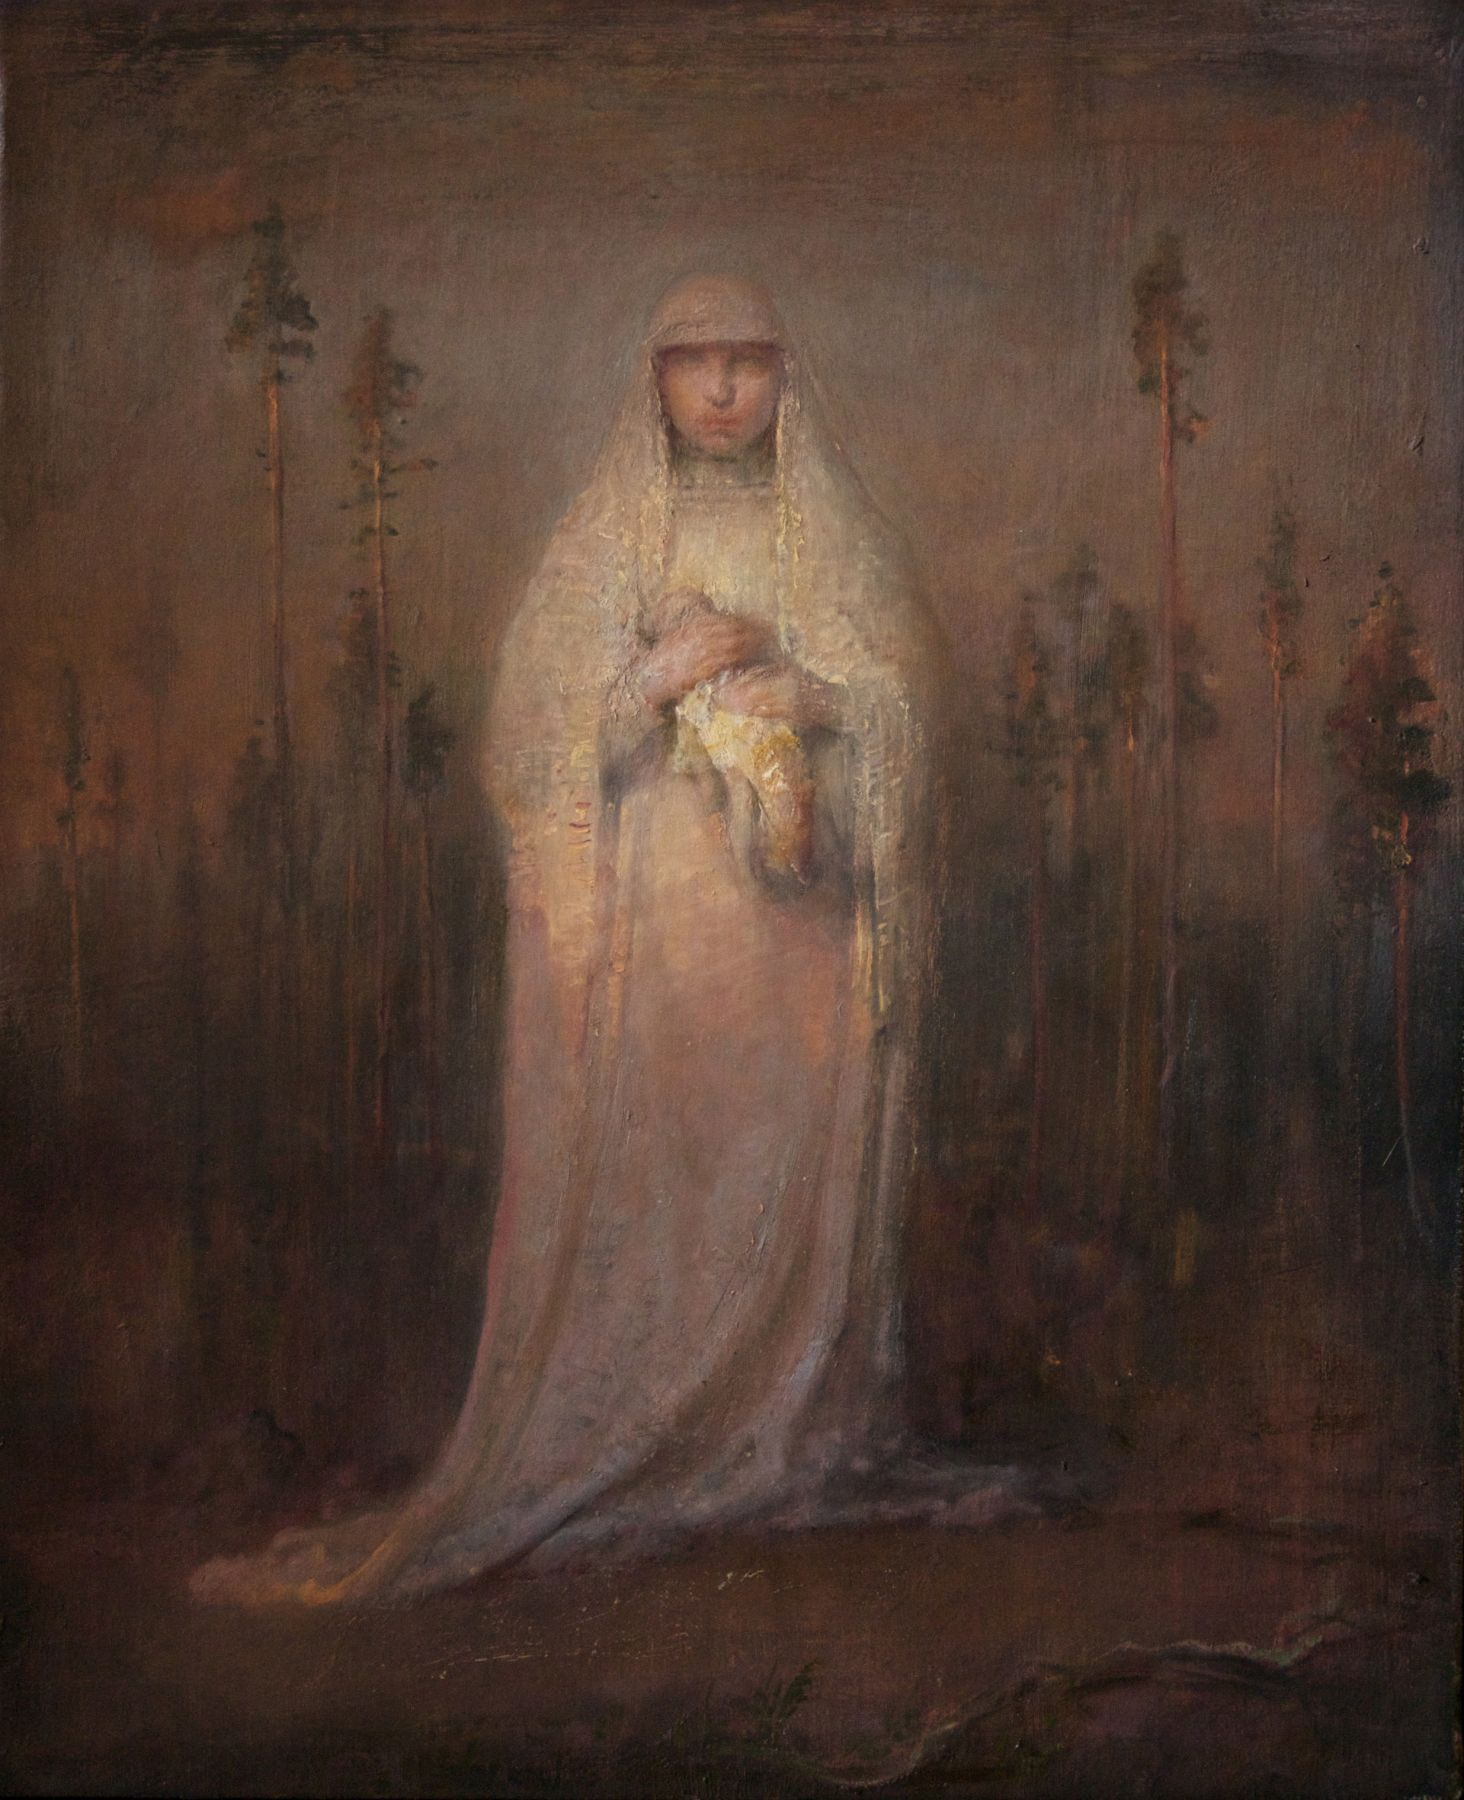 Odd Nerdrum, Bride with a Doll, oil on canvas, 25 1/2 x 21 1/2 inches